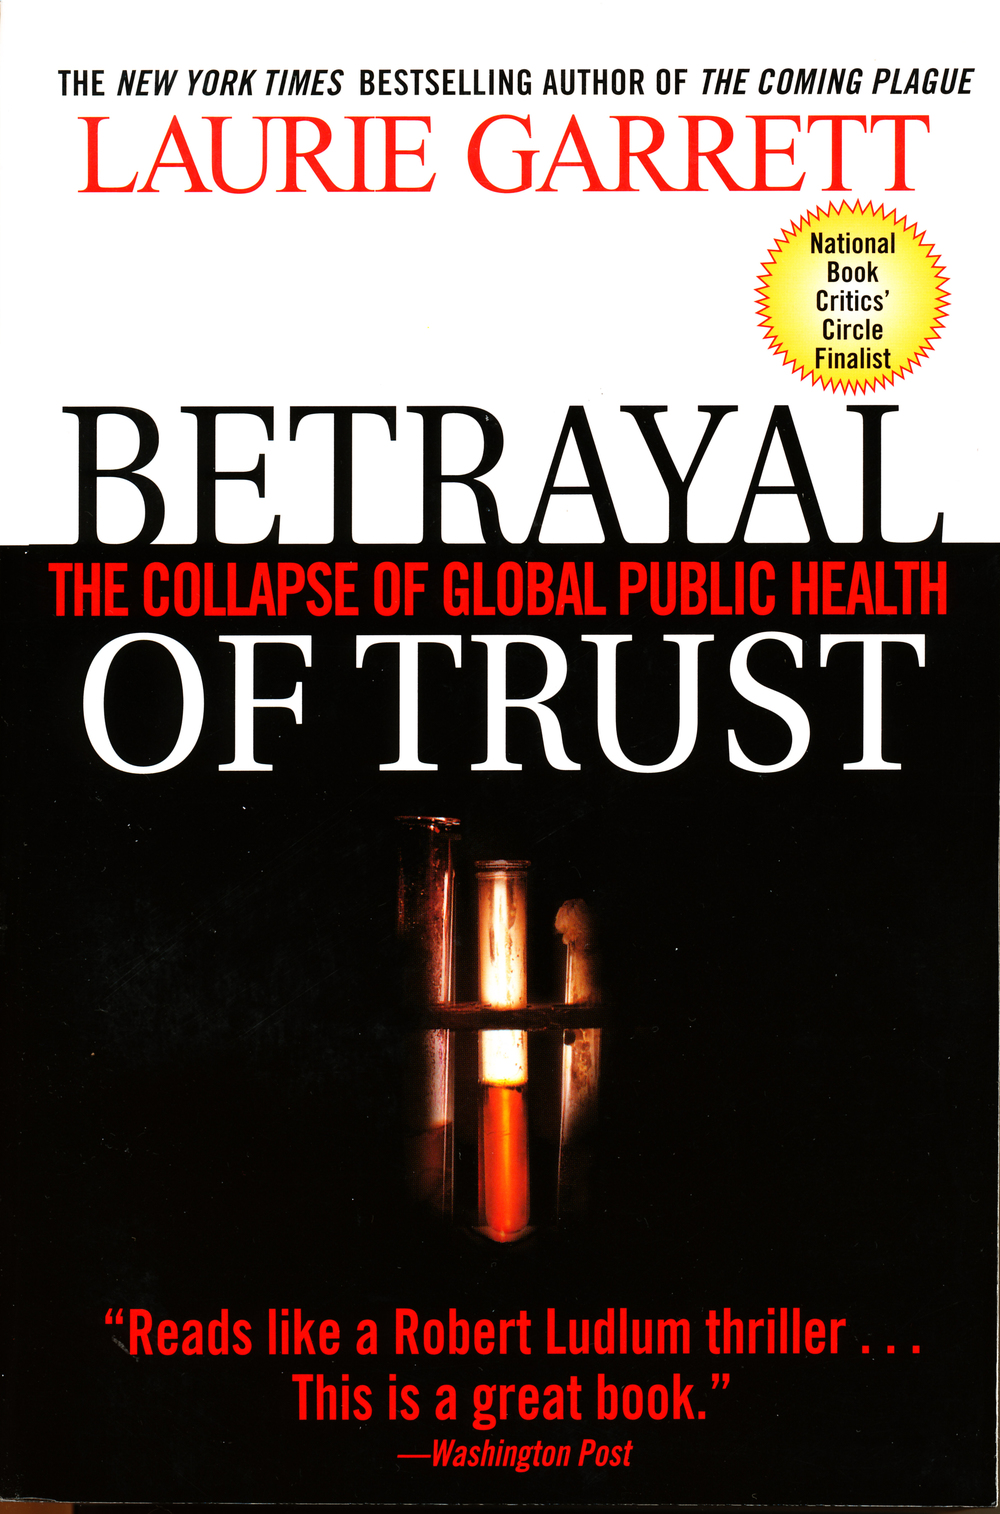 BETRAYAL OF TRUST cover US edition needs cropping.jpg